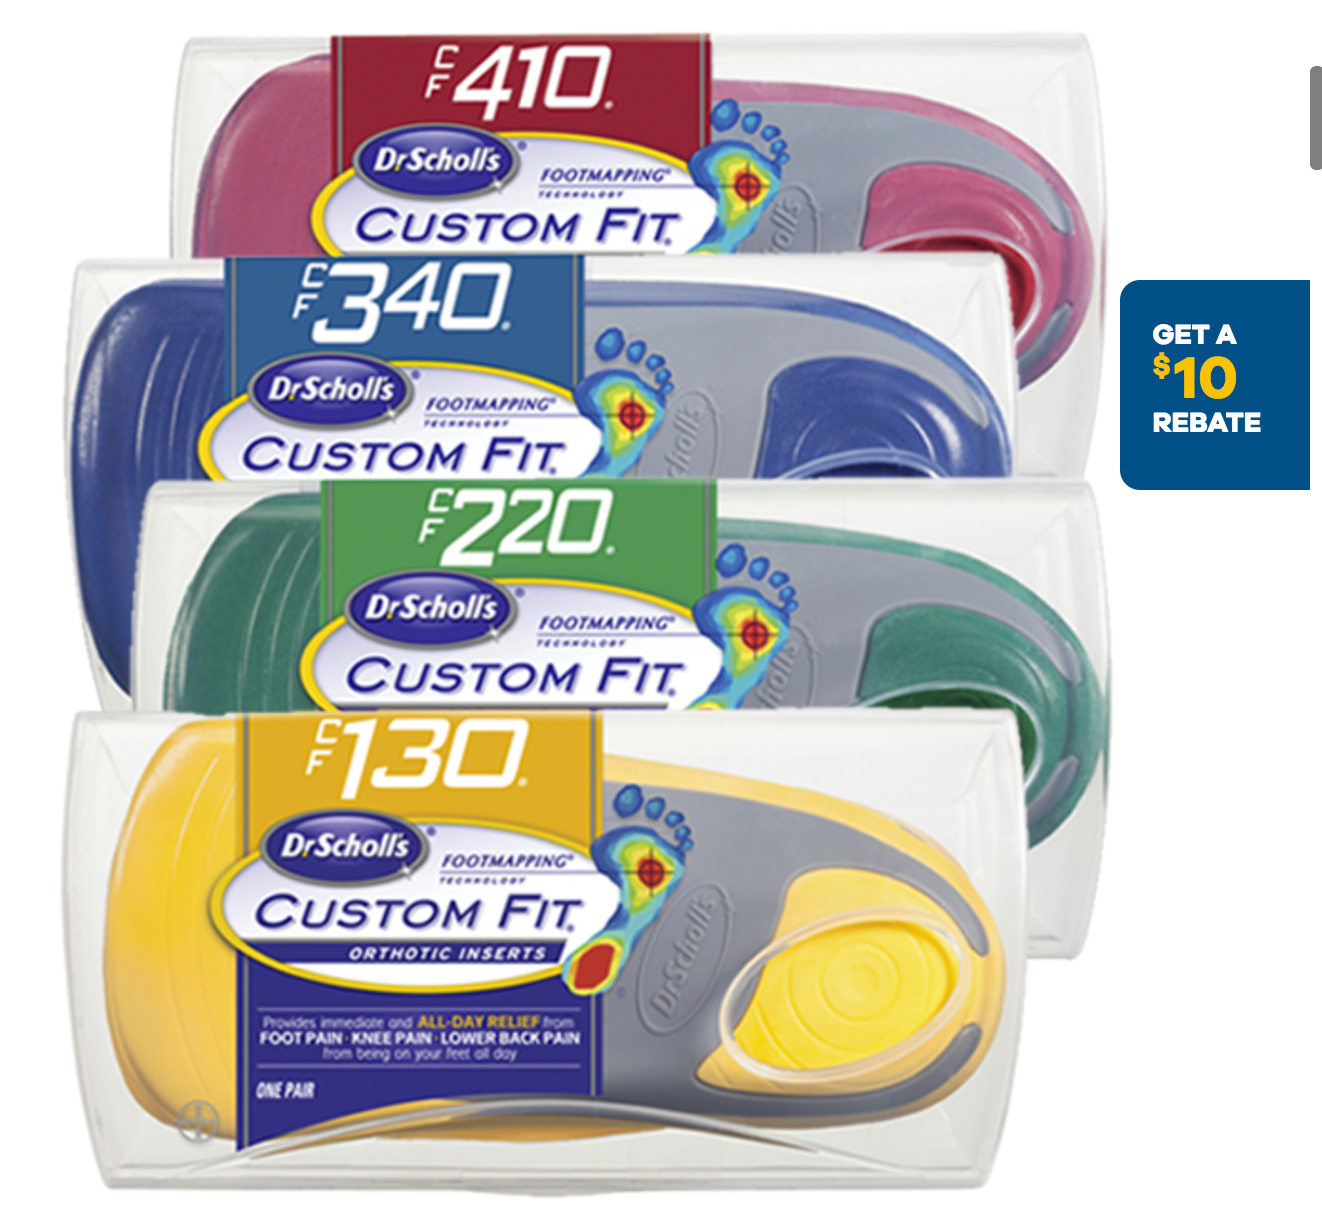 Get Dr Scholls Custom Fit Foot Inserts for only $29.96 {Reg $49.96} at Walmart!!